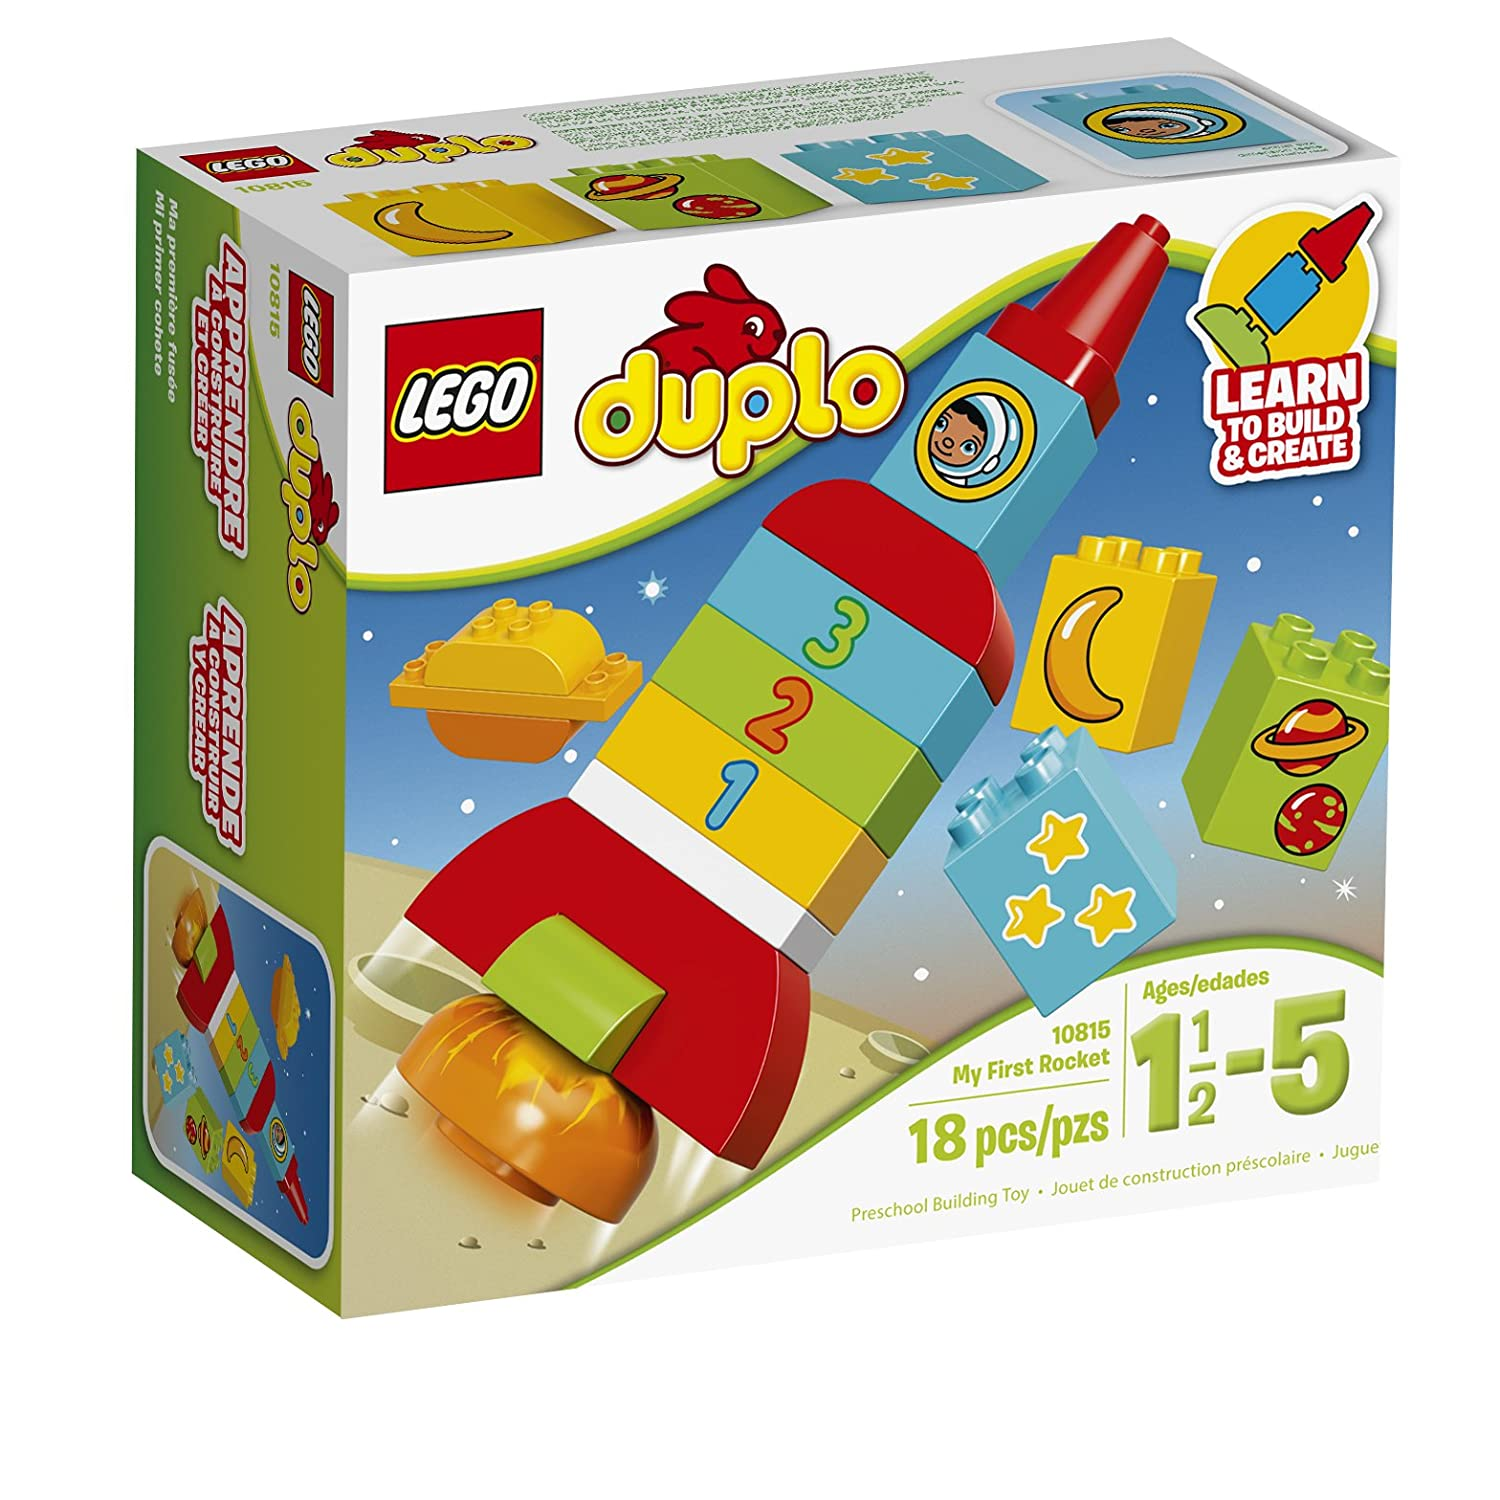 LEGO DUPLO My First Rocket 10815, Preschool, Pre-Kindergarten Large Building Block Toys for Toddlers